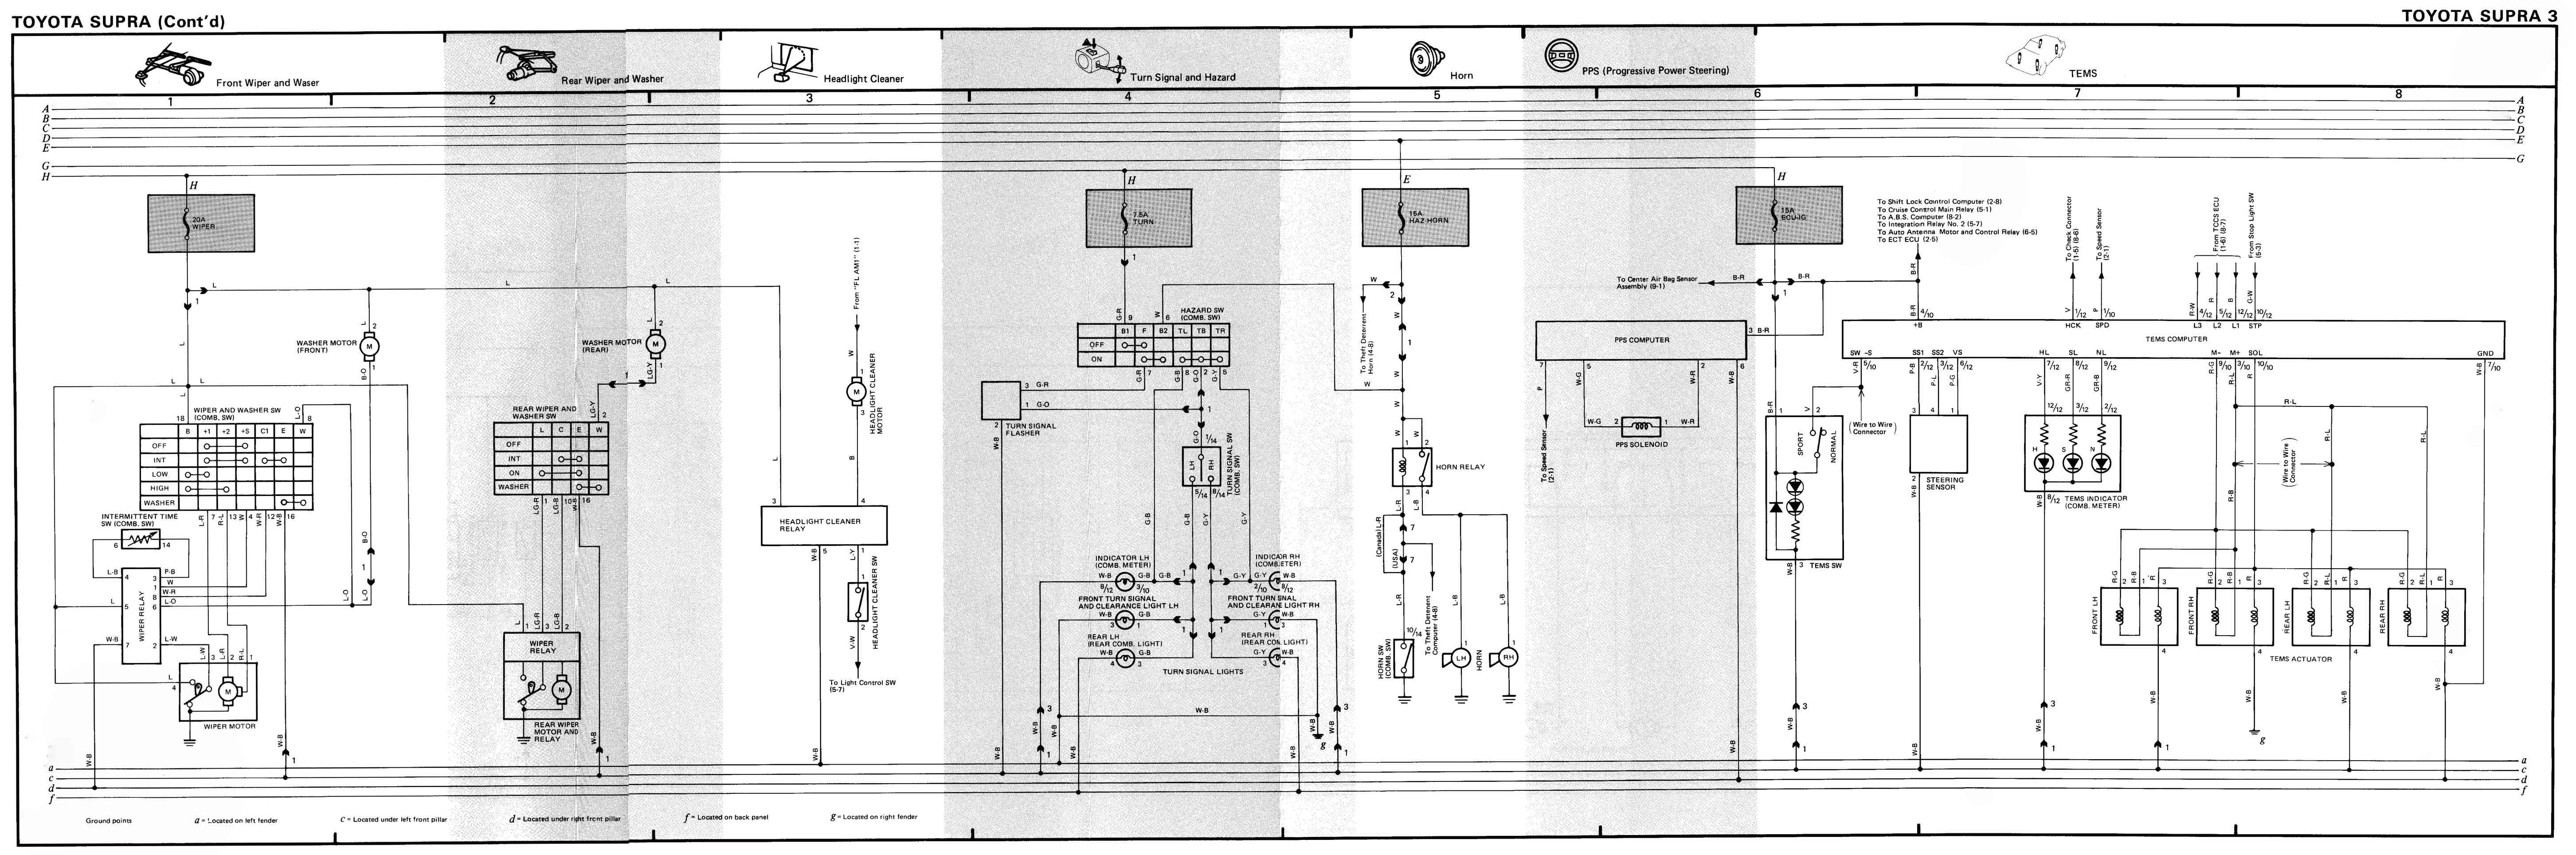 7mgte wiring harness diagram 3 phase submersible pump control box 89 7mge engine vacuum